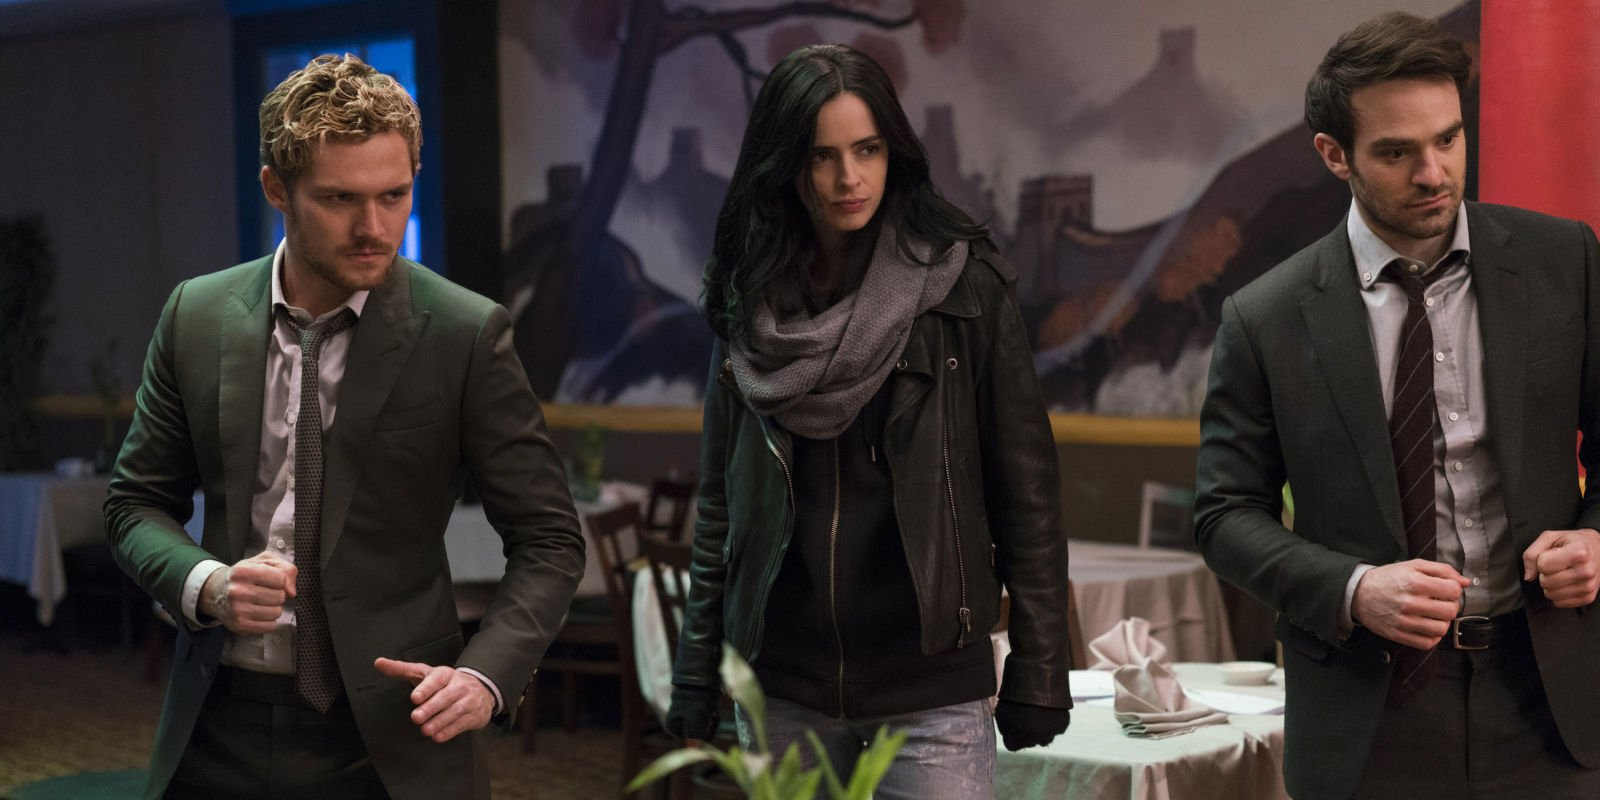 Jessica Jones' Krysten Ritter says The Defenders season 2 probably won't happen